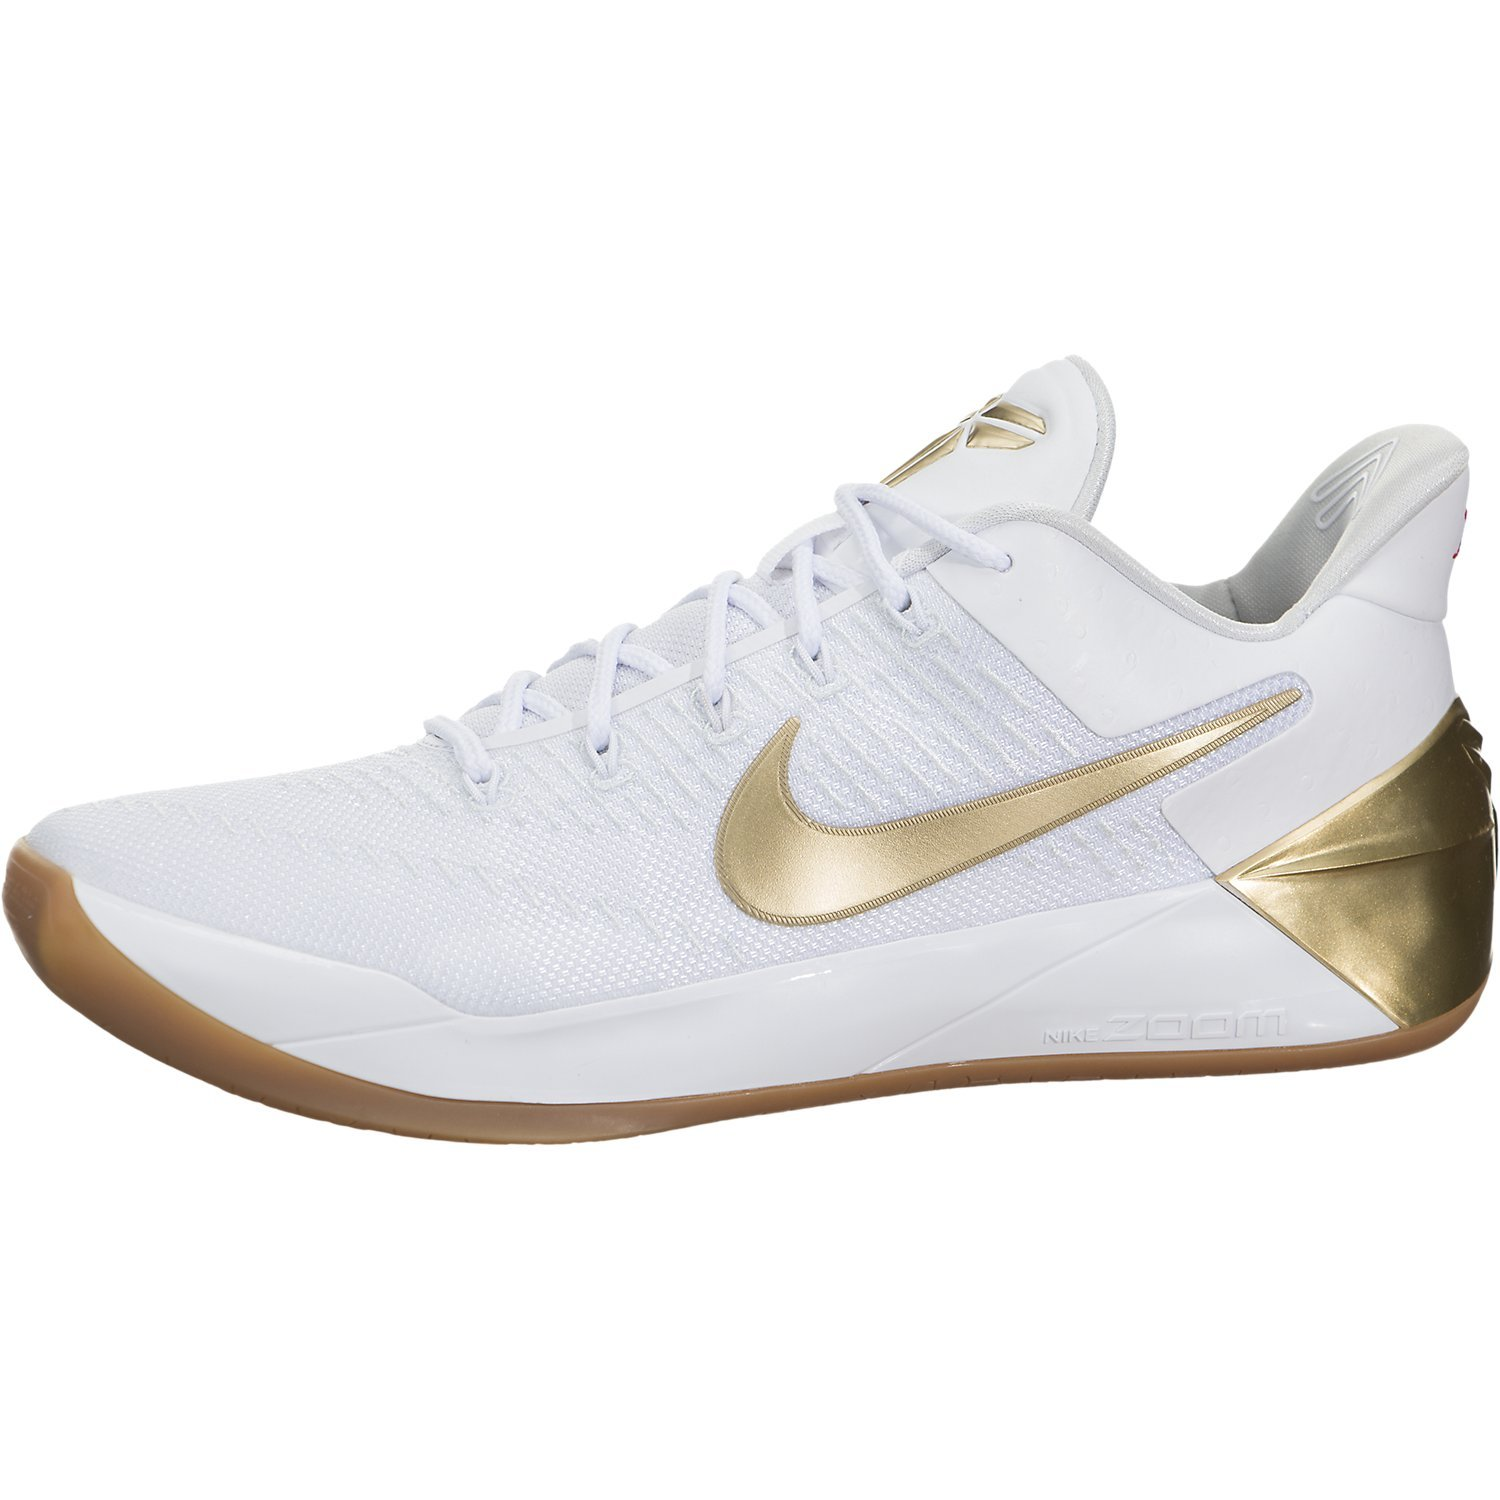 los angeles 4b5eb 95464 Galleon - Nike Mens Kobe A.D. White/Metallic Gold Synthetic ...